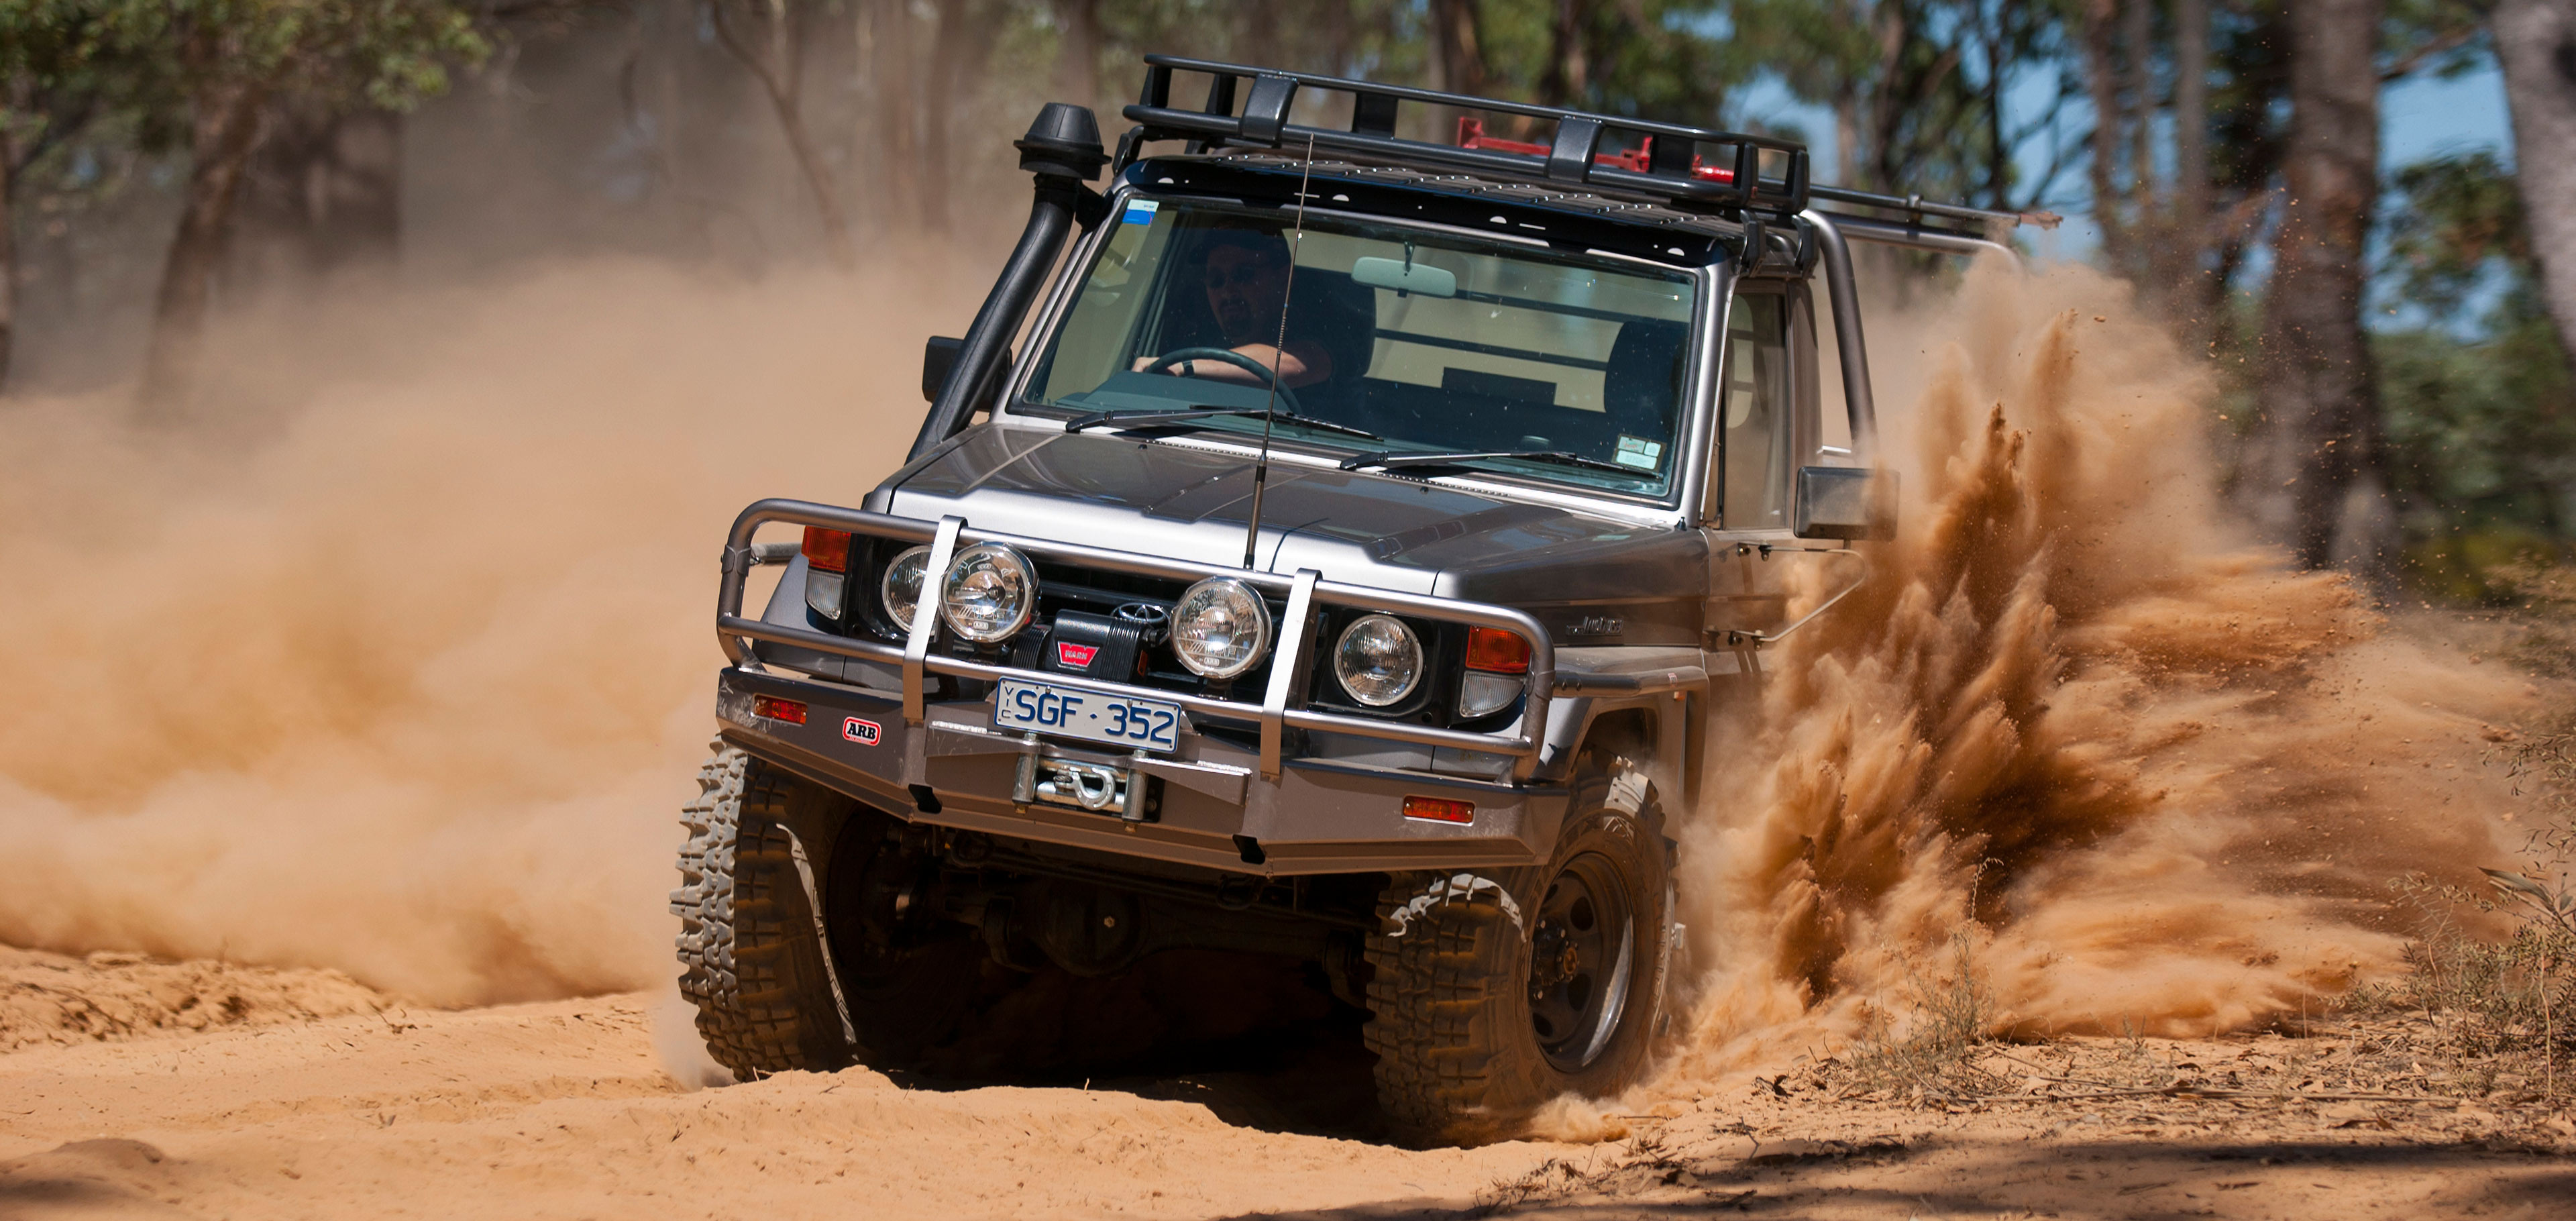 Toyota Land Cruiser 70 >> ARB 4×4 Accessories | Recovery Points - ARB 4x4 Accessories